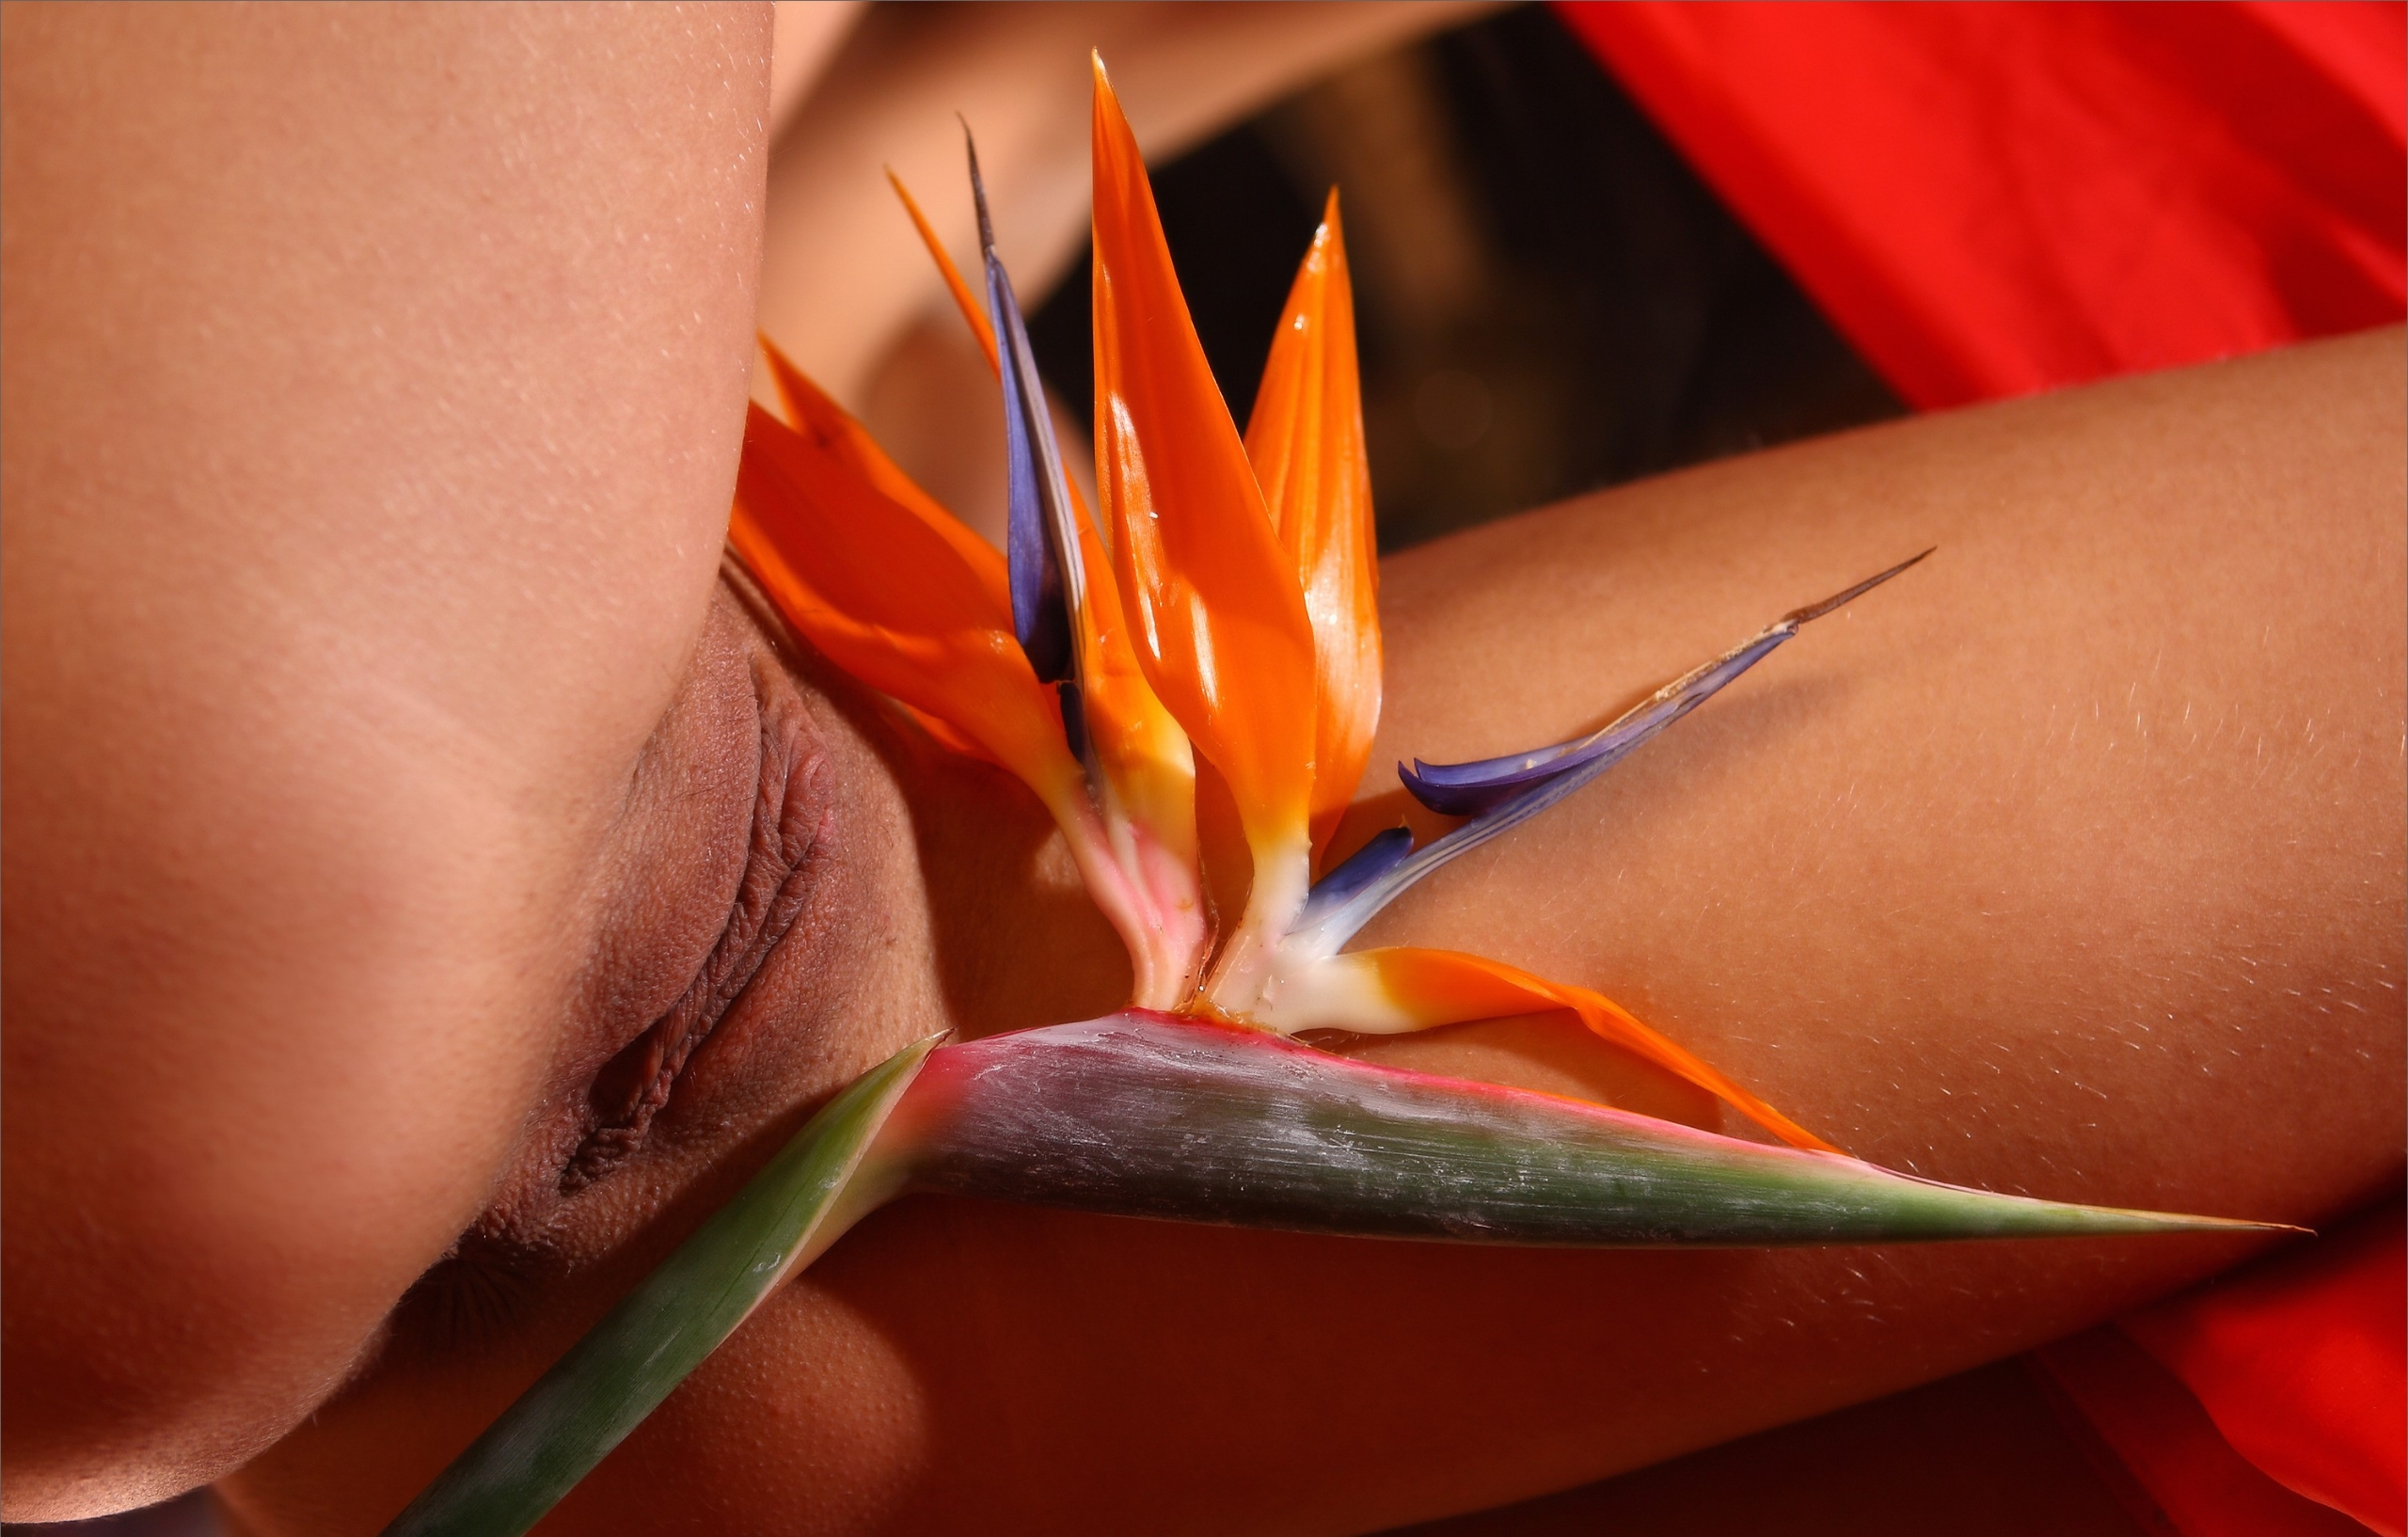 Bodyscapes: Strelitzia guarding - sunflower22a | ello